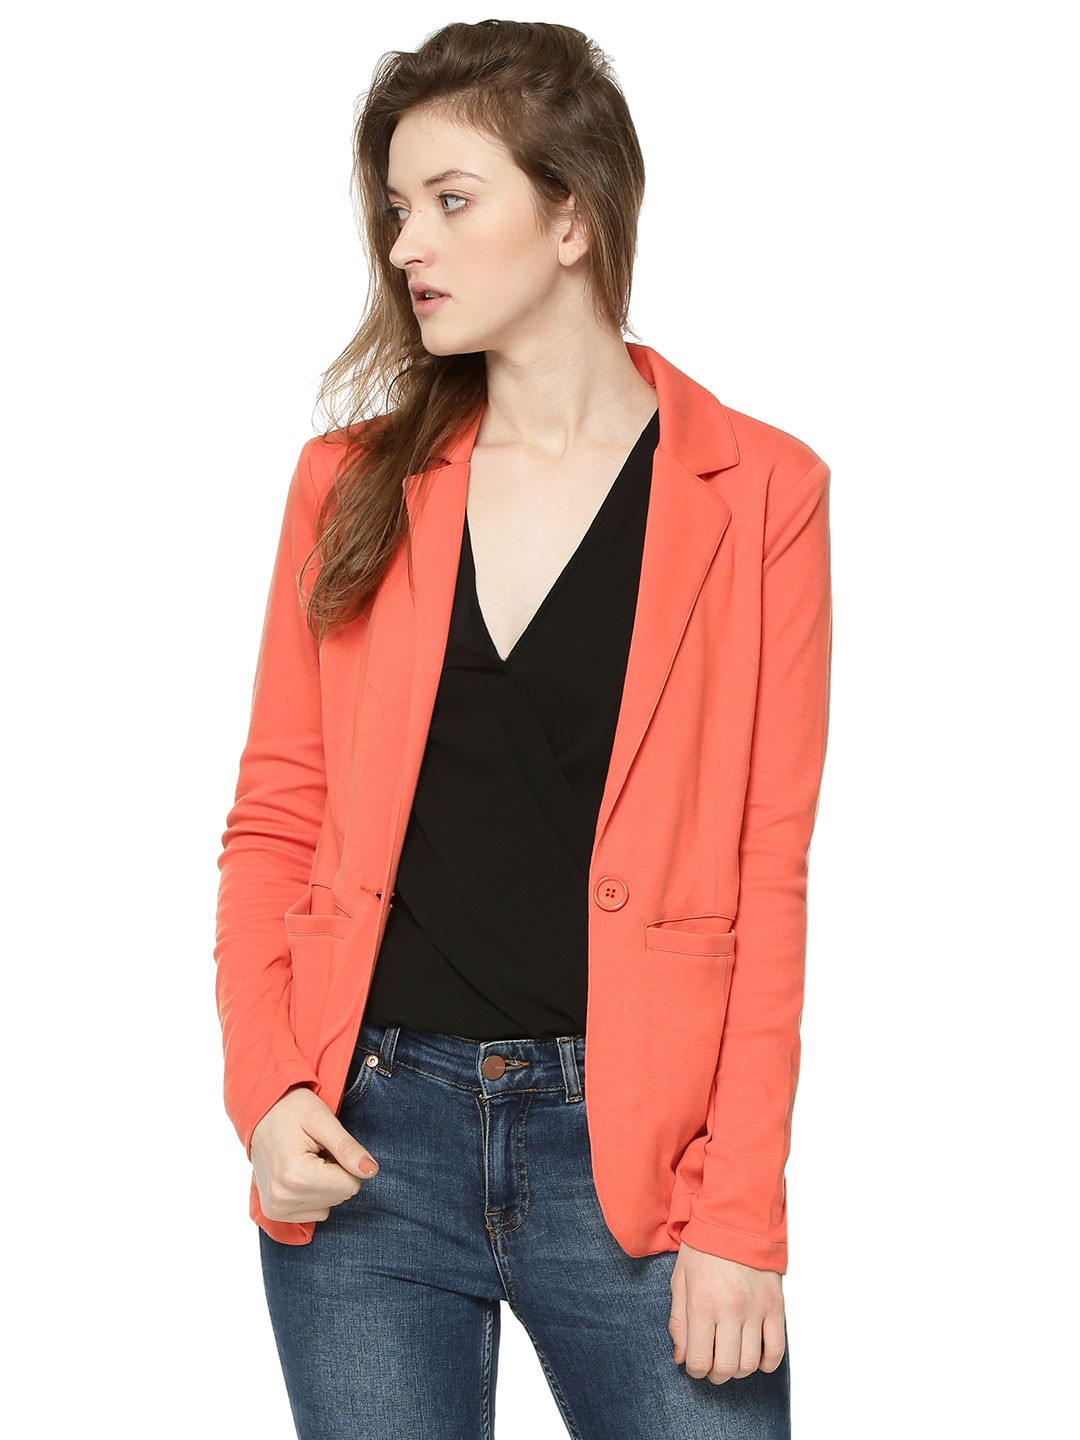 Shop online for women's blazers at UNIQLO. Browse the selection of women's soft jersey, stretch blazers and more. UNIQLO US.